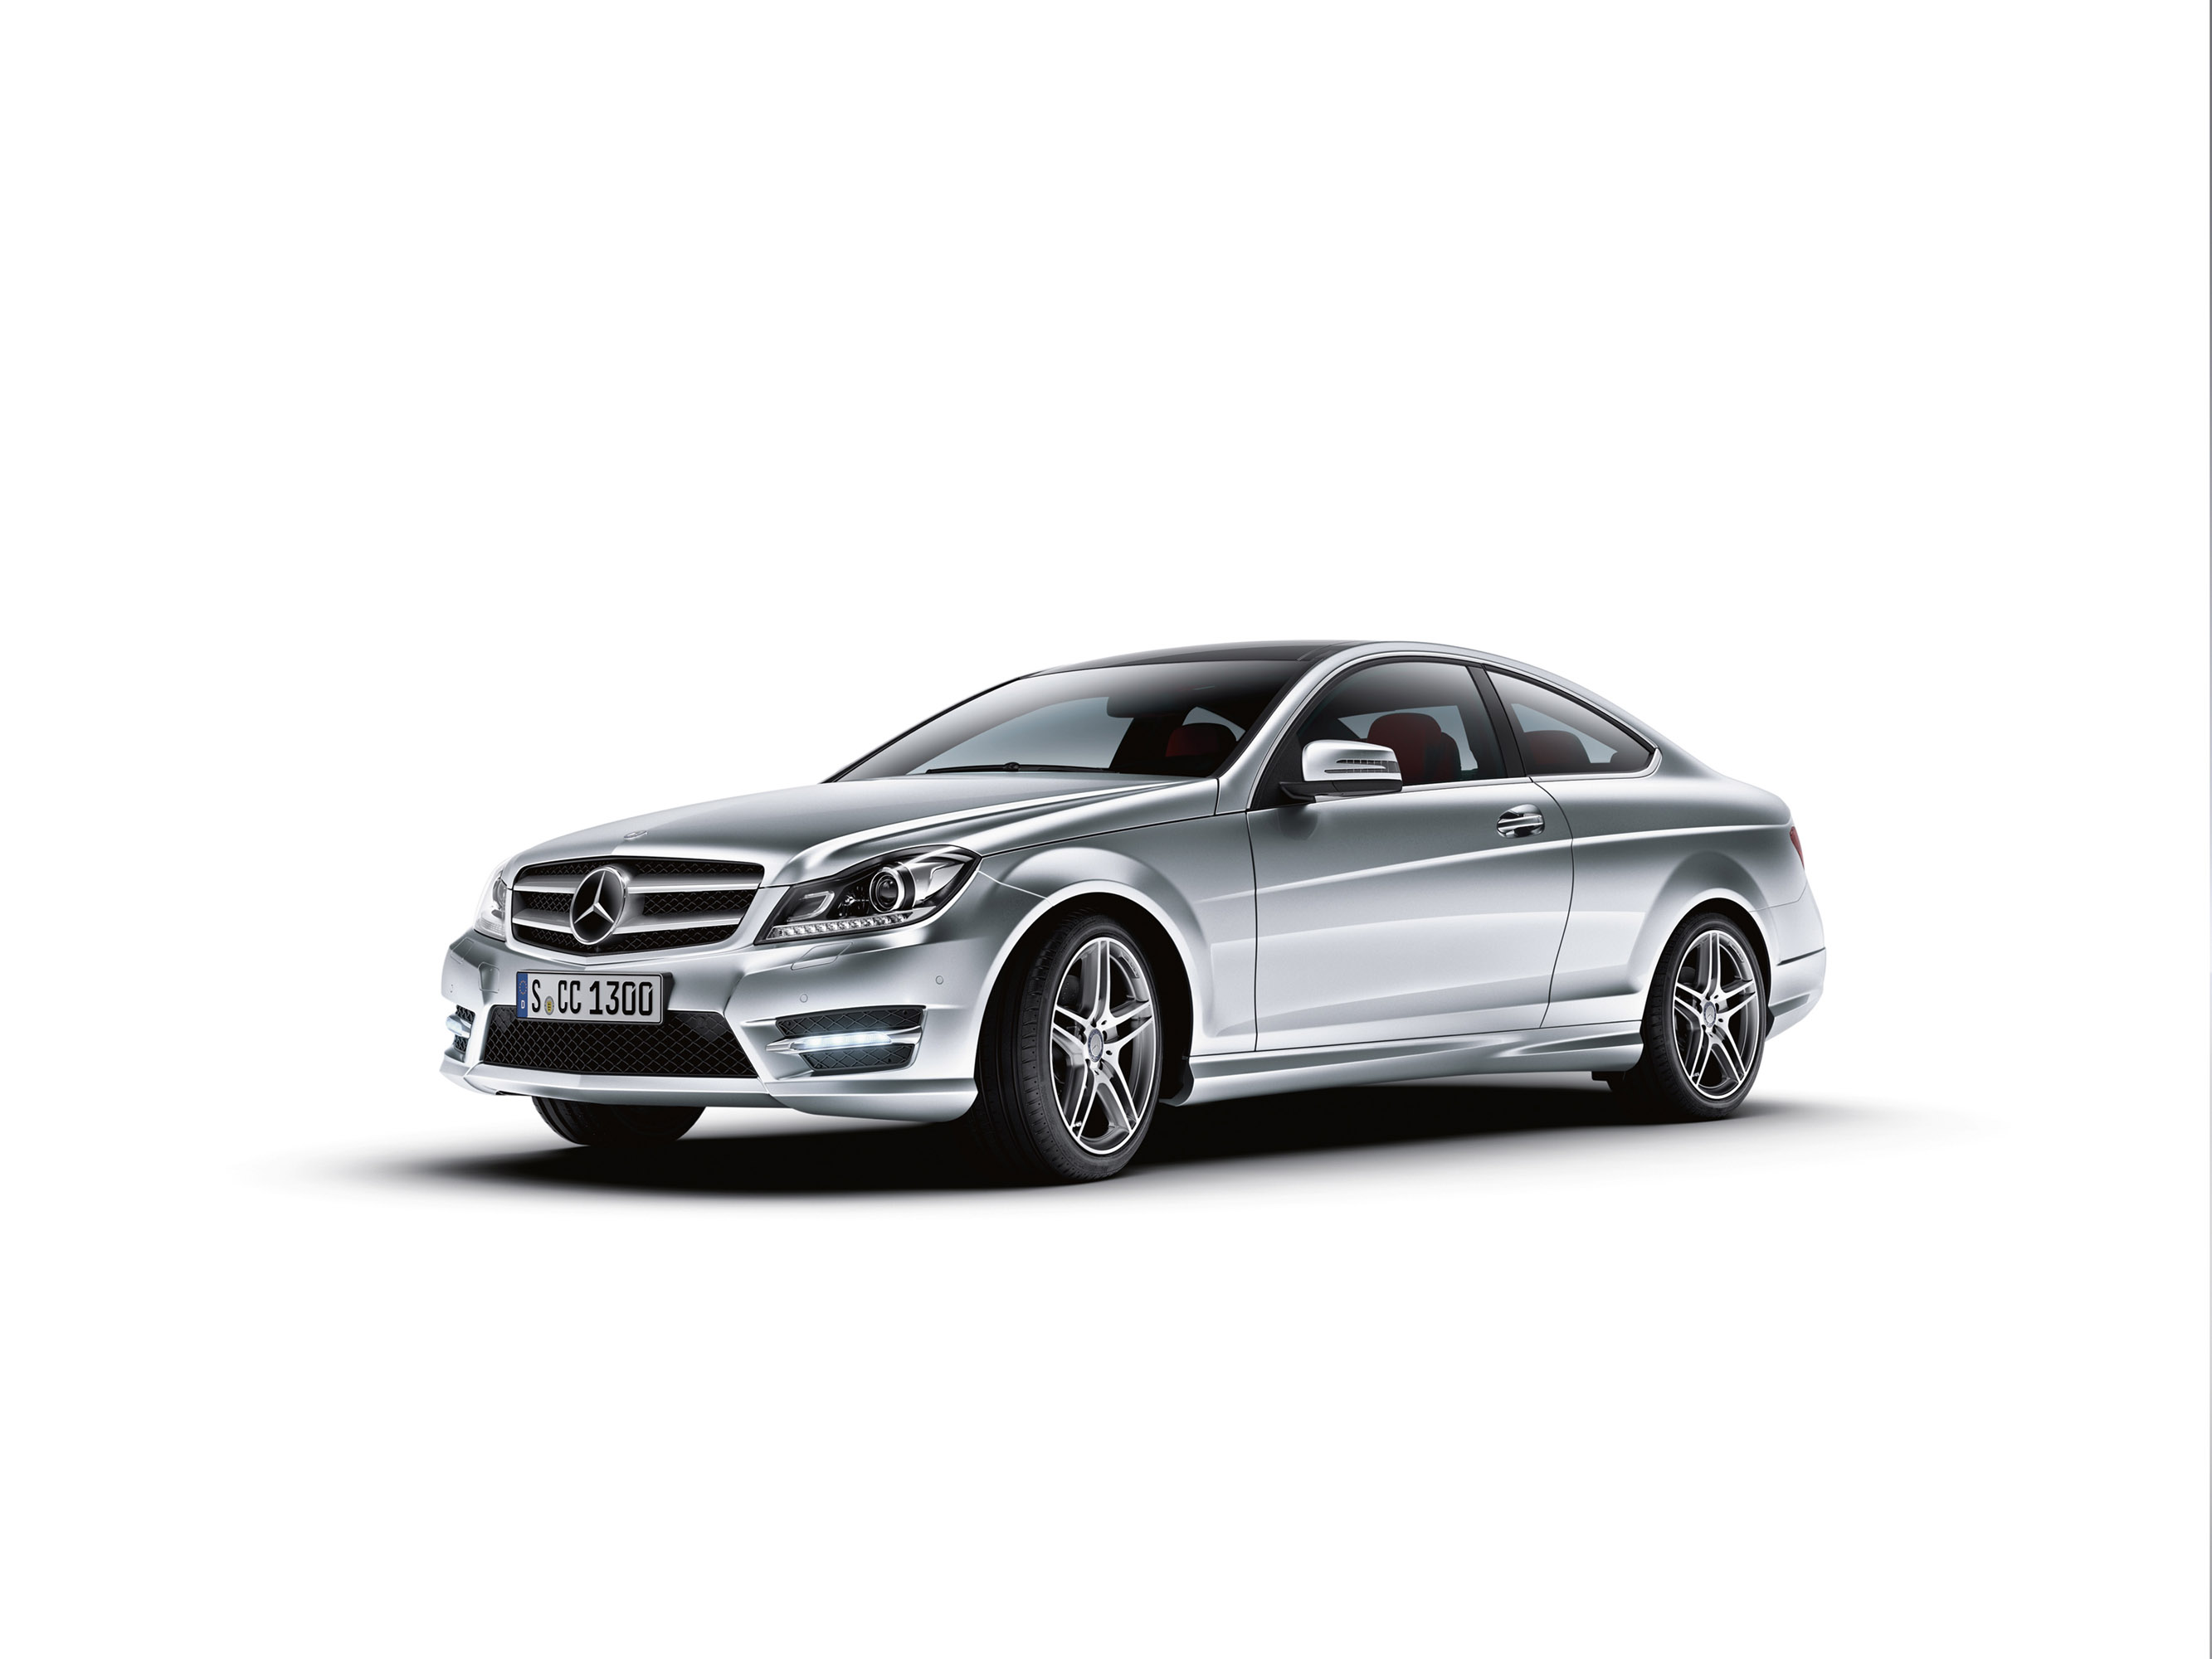 2013 mercedes benz c class welcomes 1 6 engine to the family. Black Bedroom Furniture Sets. Home Design Ideas